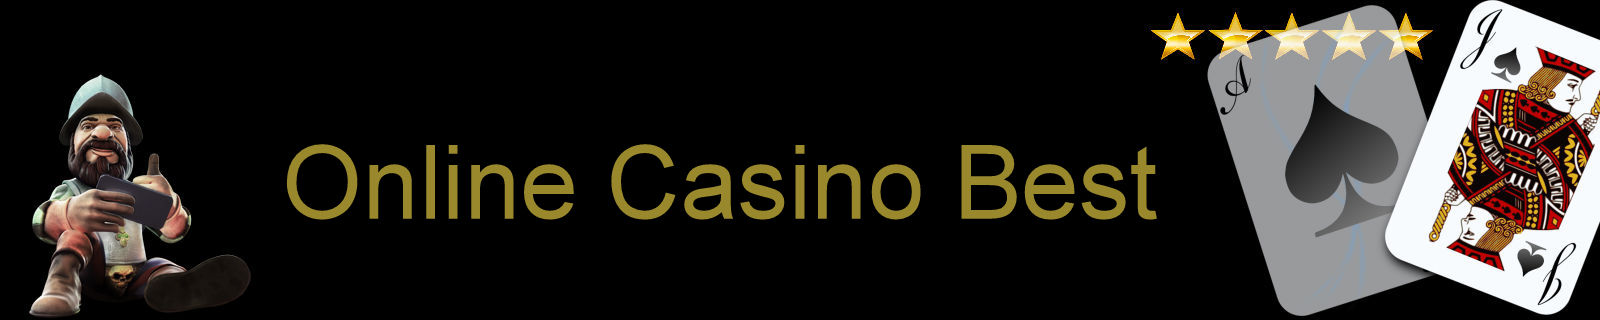 which is the best online casino